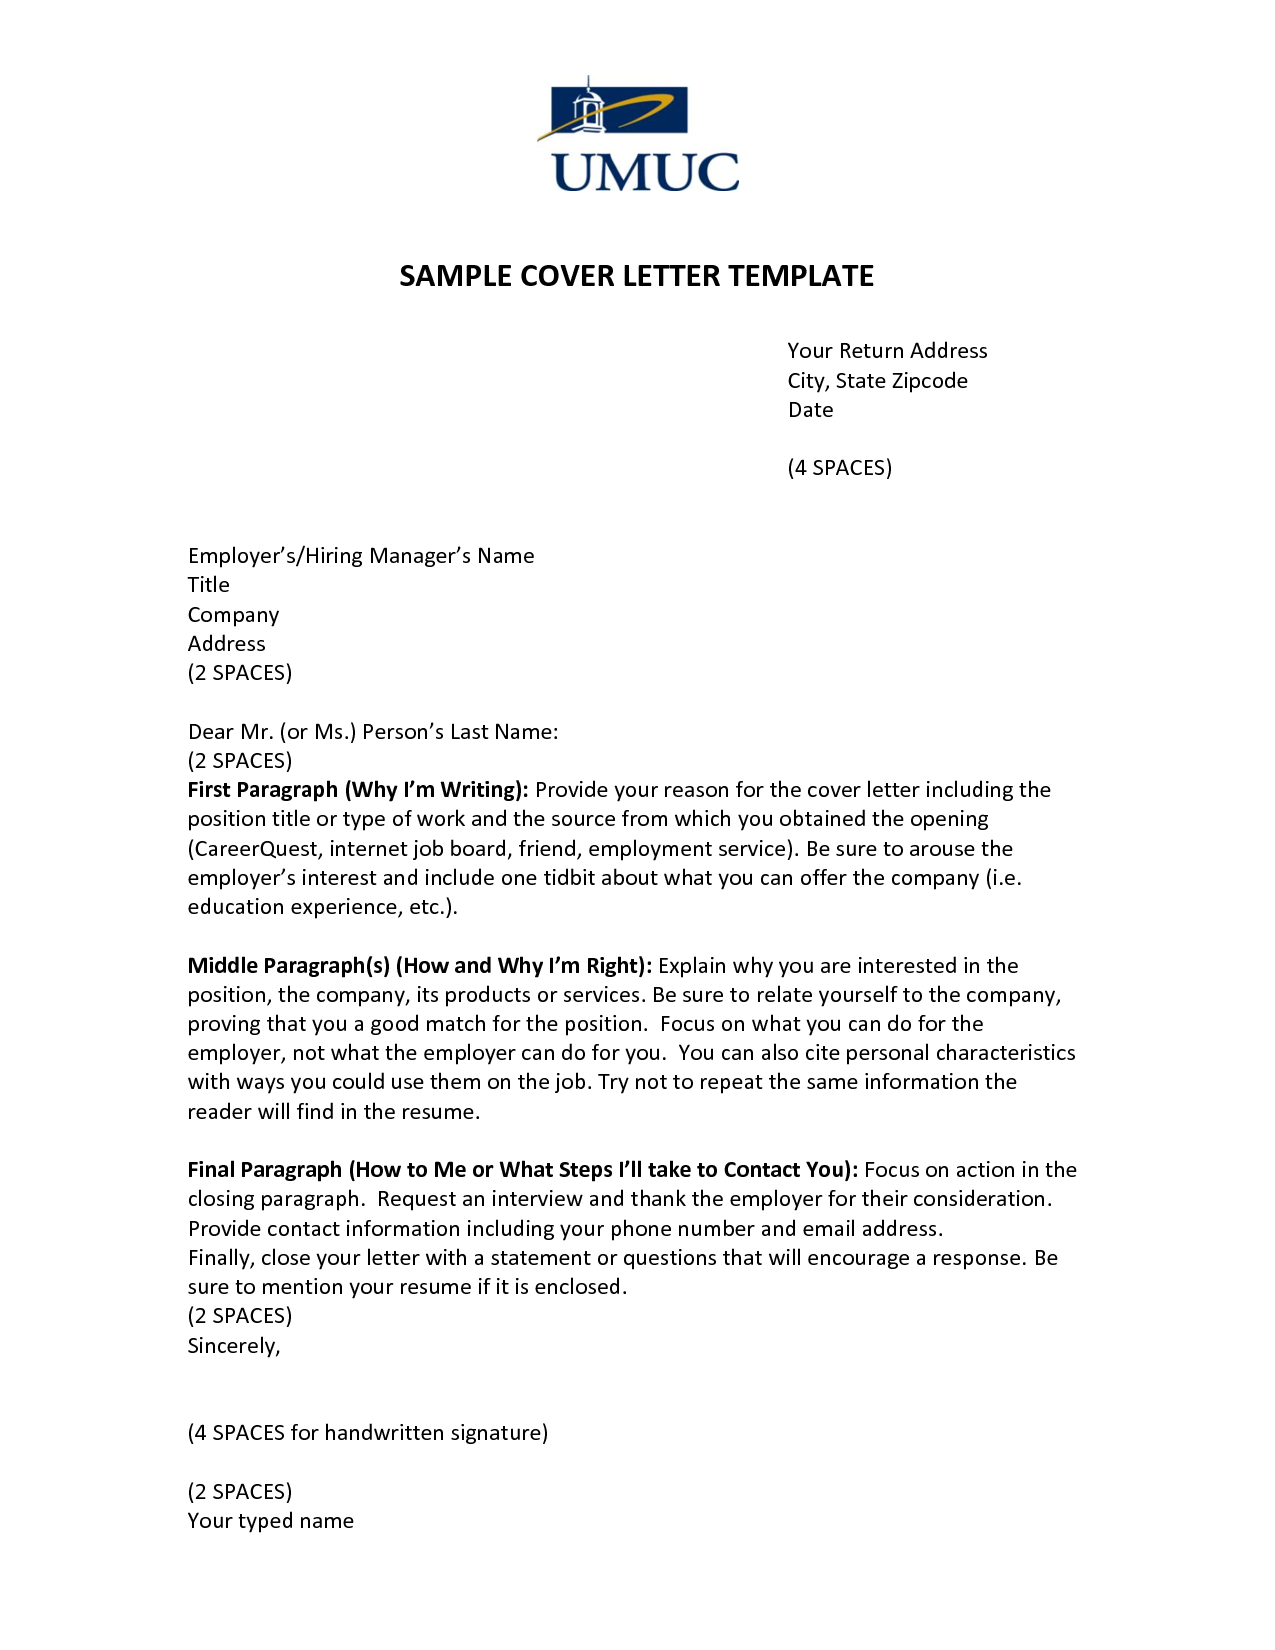 sample cover letter template umucover letter template application  also sample cover letter template umucover letter template application lettersample